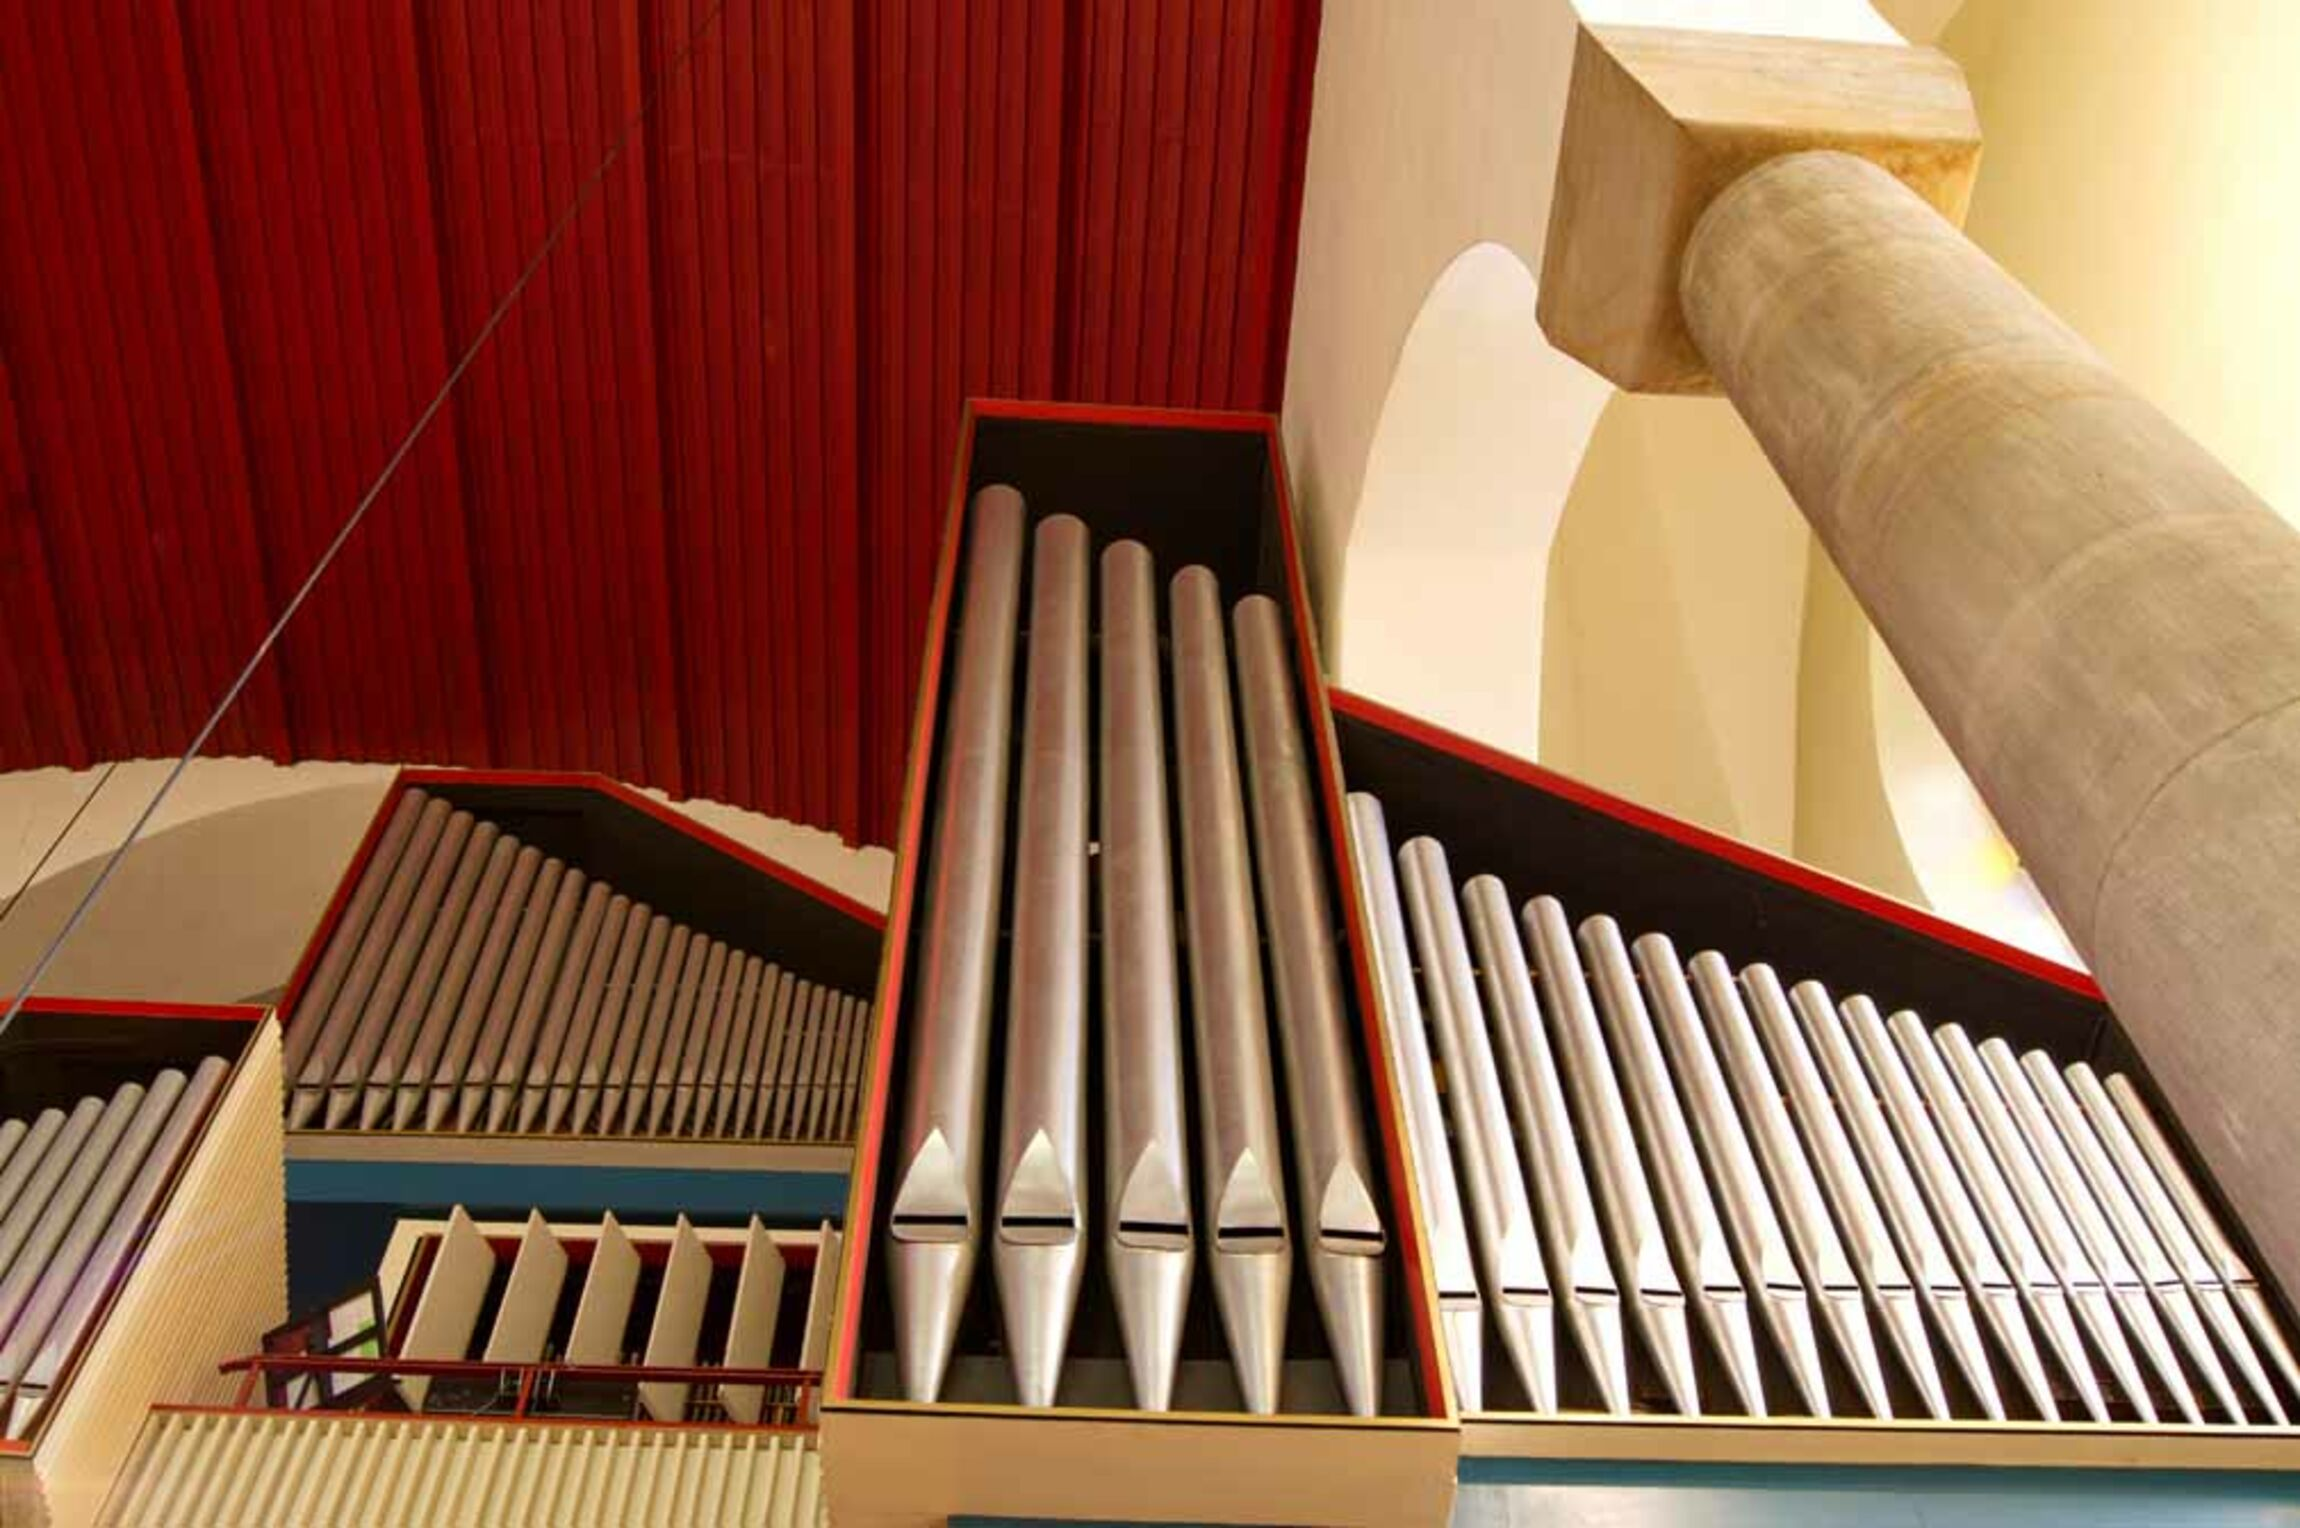 Picture of the organ in Petri Church